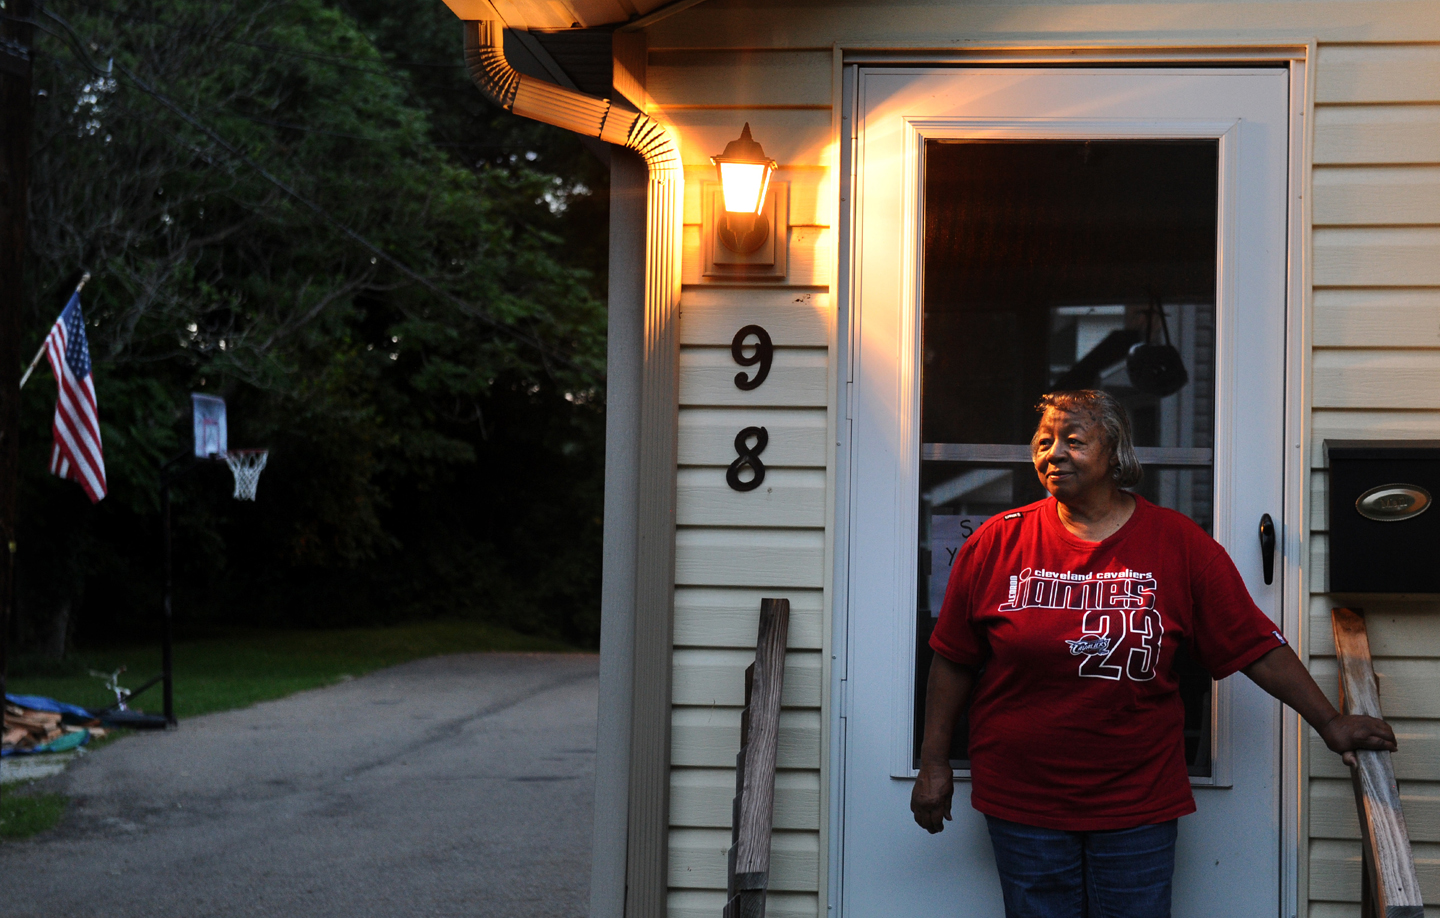 AKRON, OHIO AUGUST 27, 2014-Wanda Reaves, who once housed Lebron James as a child, stands at her front door on Overlook Place in Akron, Ohio. (Photo by Wally Skalij/Los Angeles Times via Getty Images)